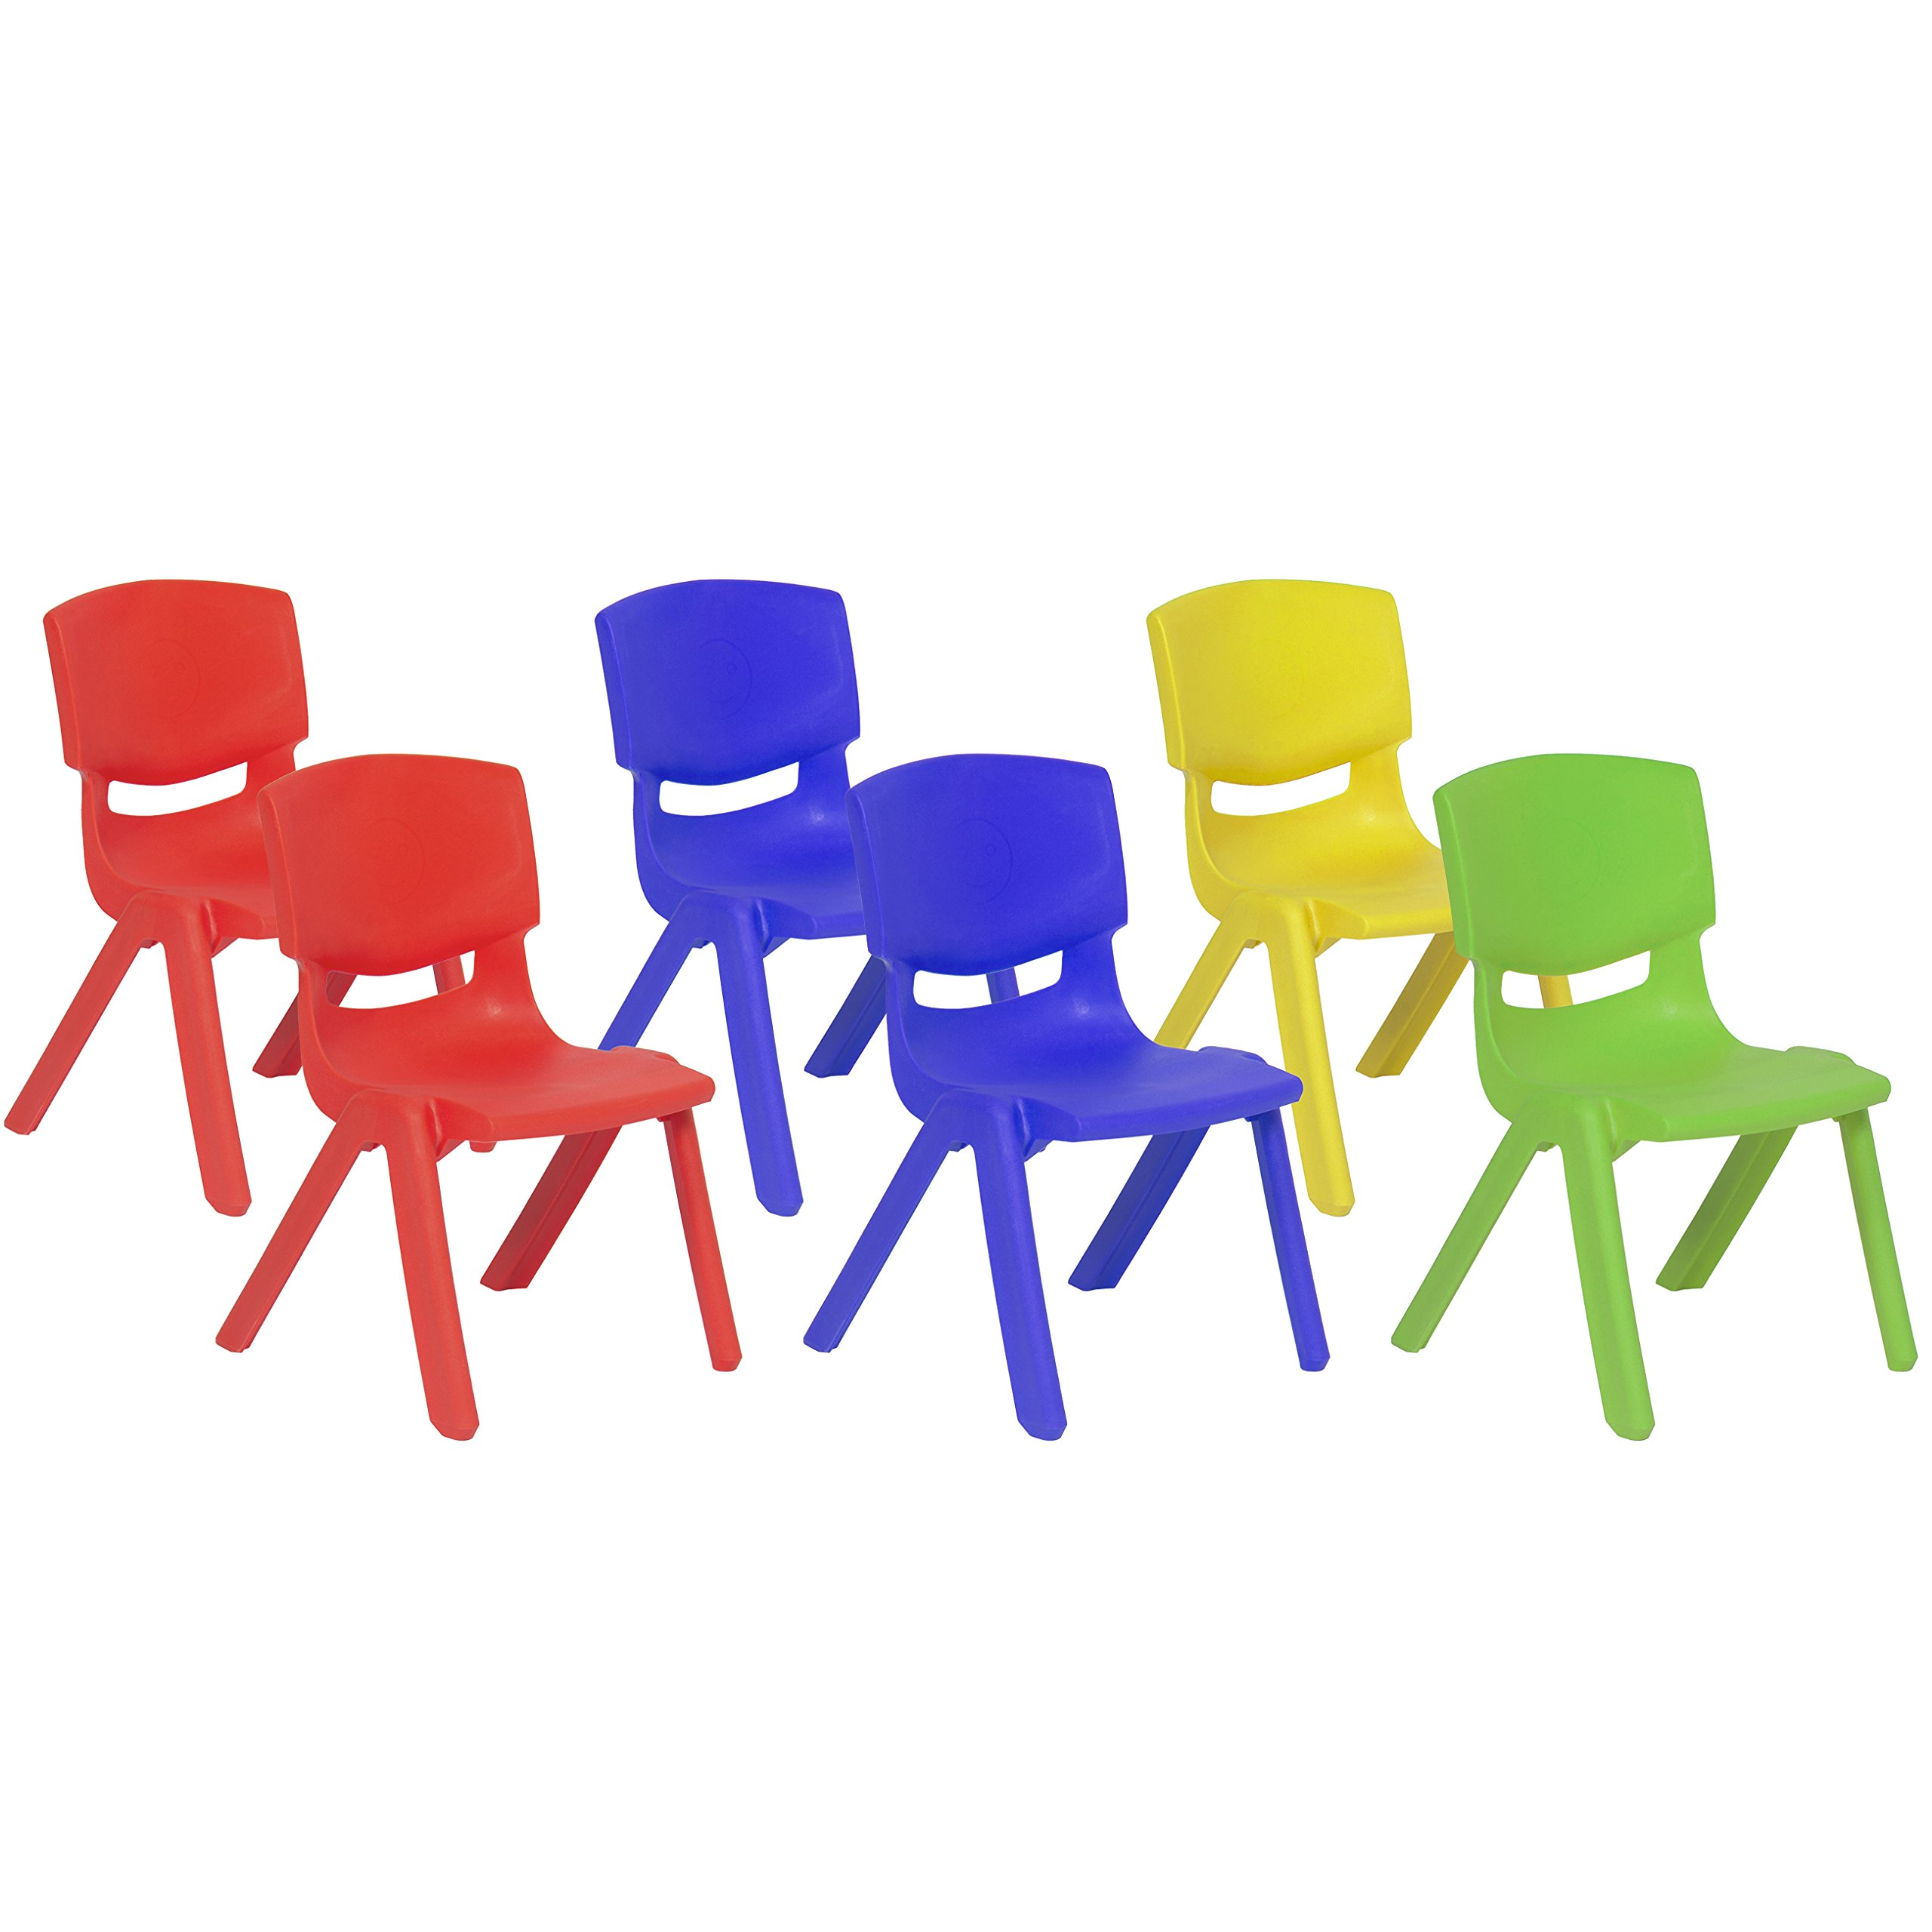 Best Choice Products Multicolor Set of 6 Kids Plastic Stacking School Chairs Set, 10'' Height Colorful Stackable Seat